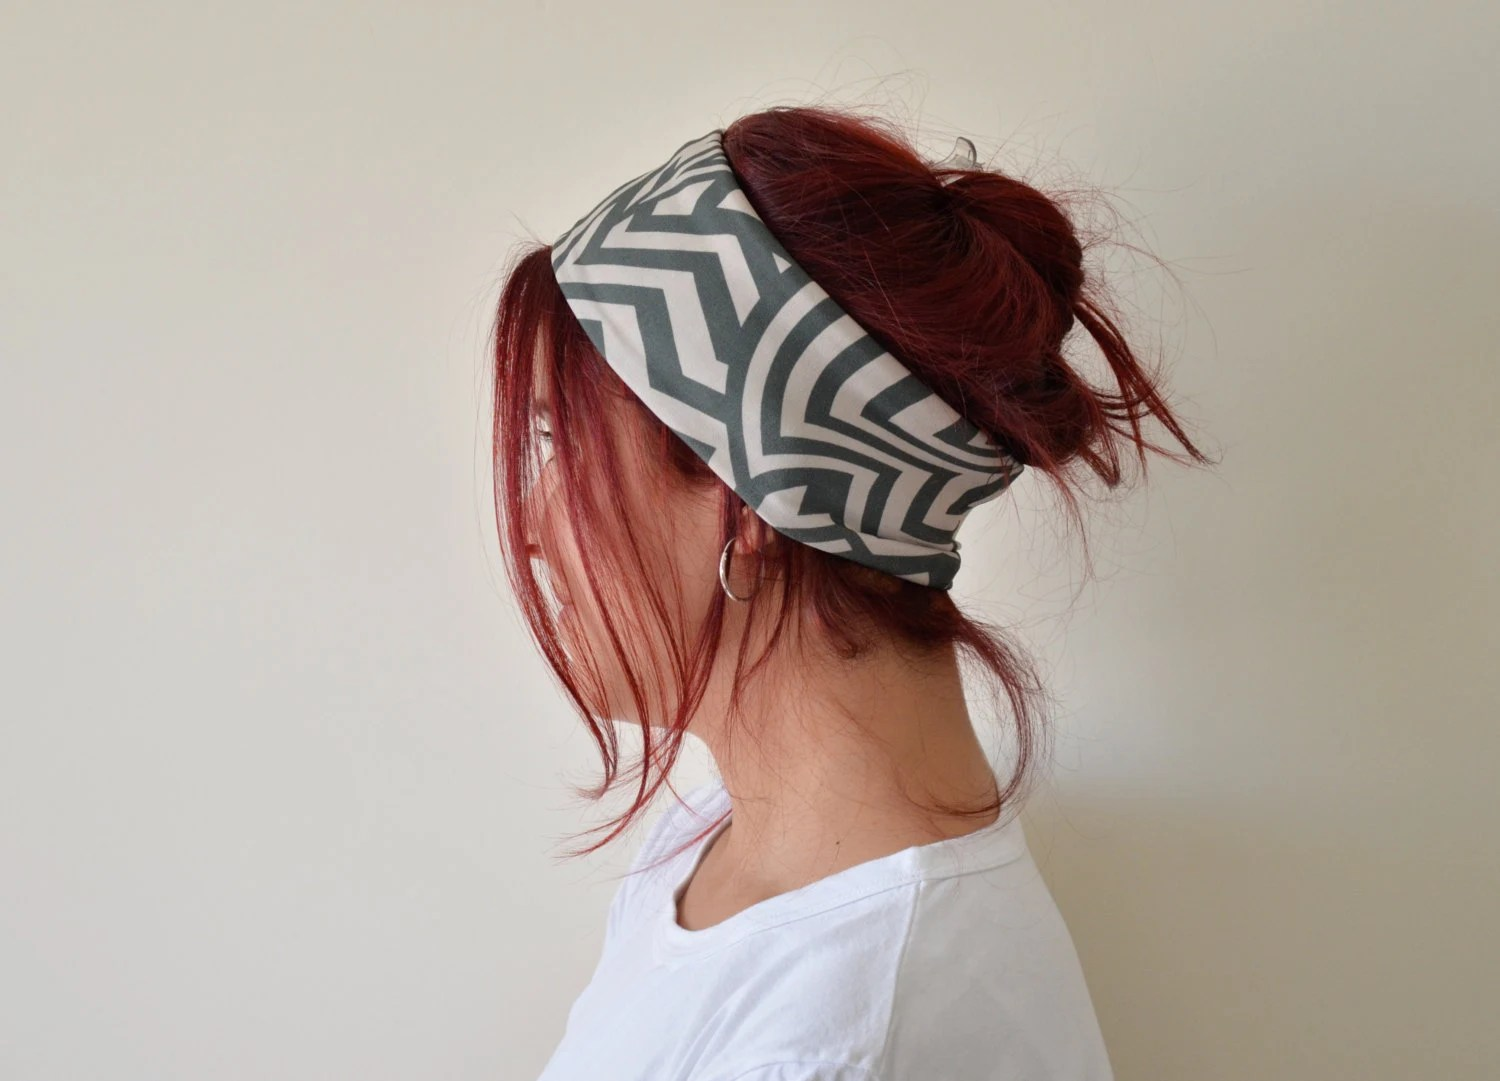 Khaki Cream Tribal Geometric Stretch Hairband Headband Fabric Hairband Fashionable Hair Accessories Designscope Gift Ideas for Her - designscope